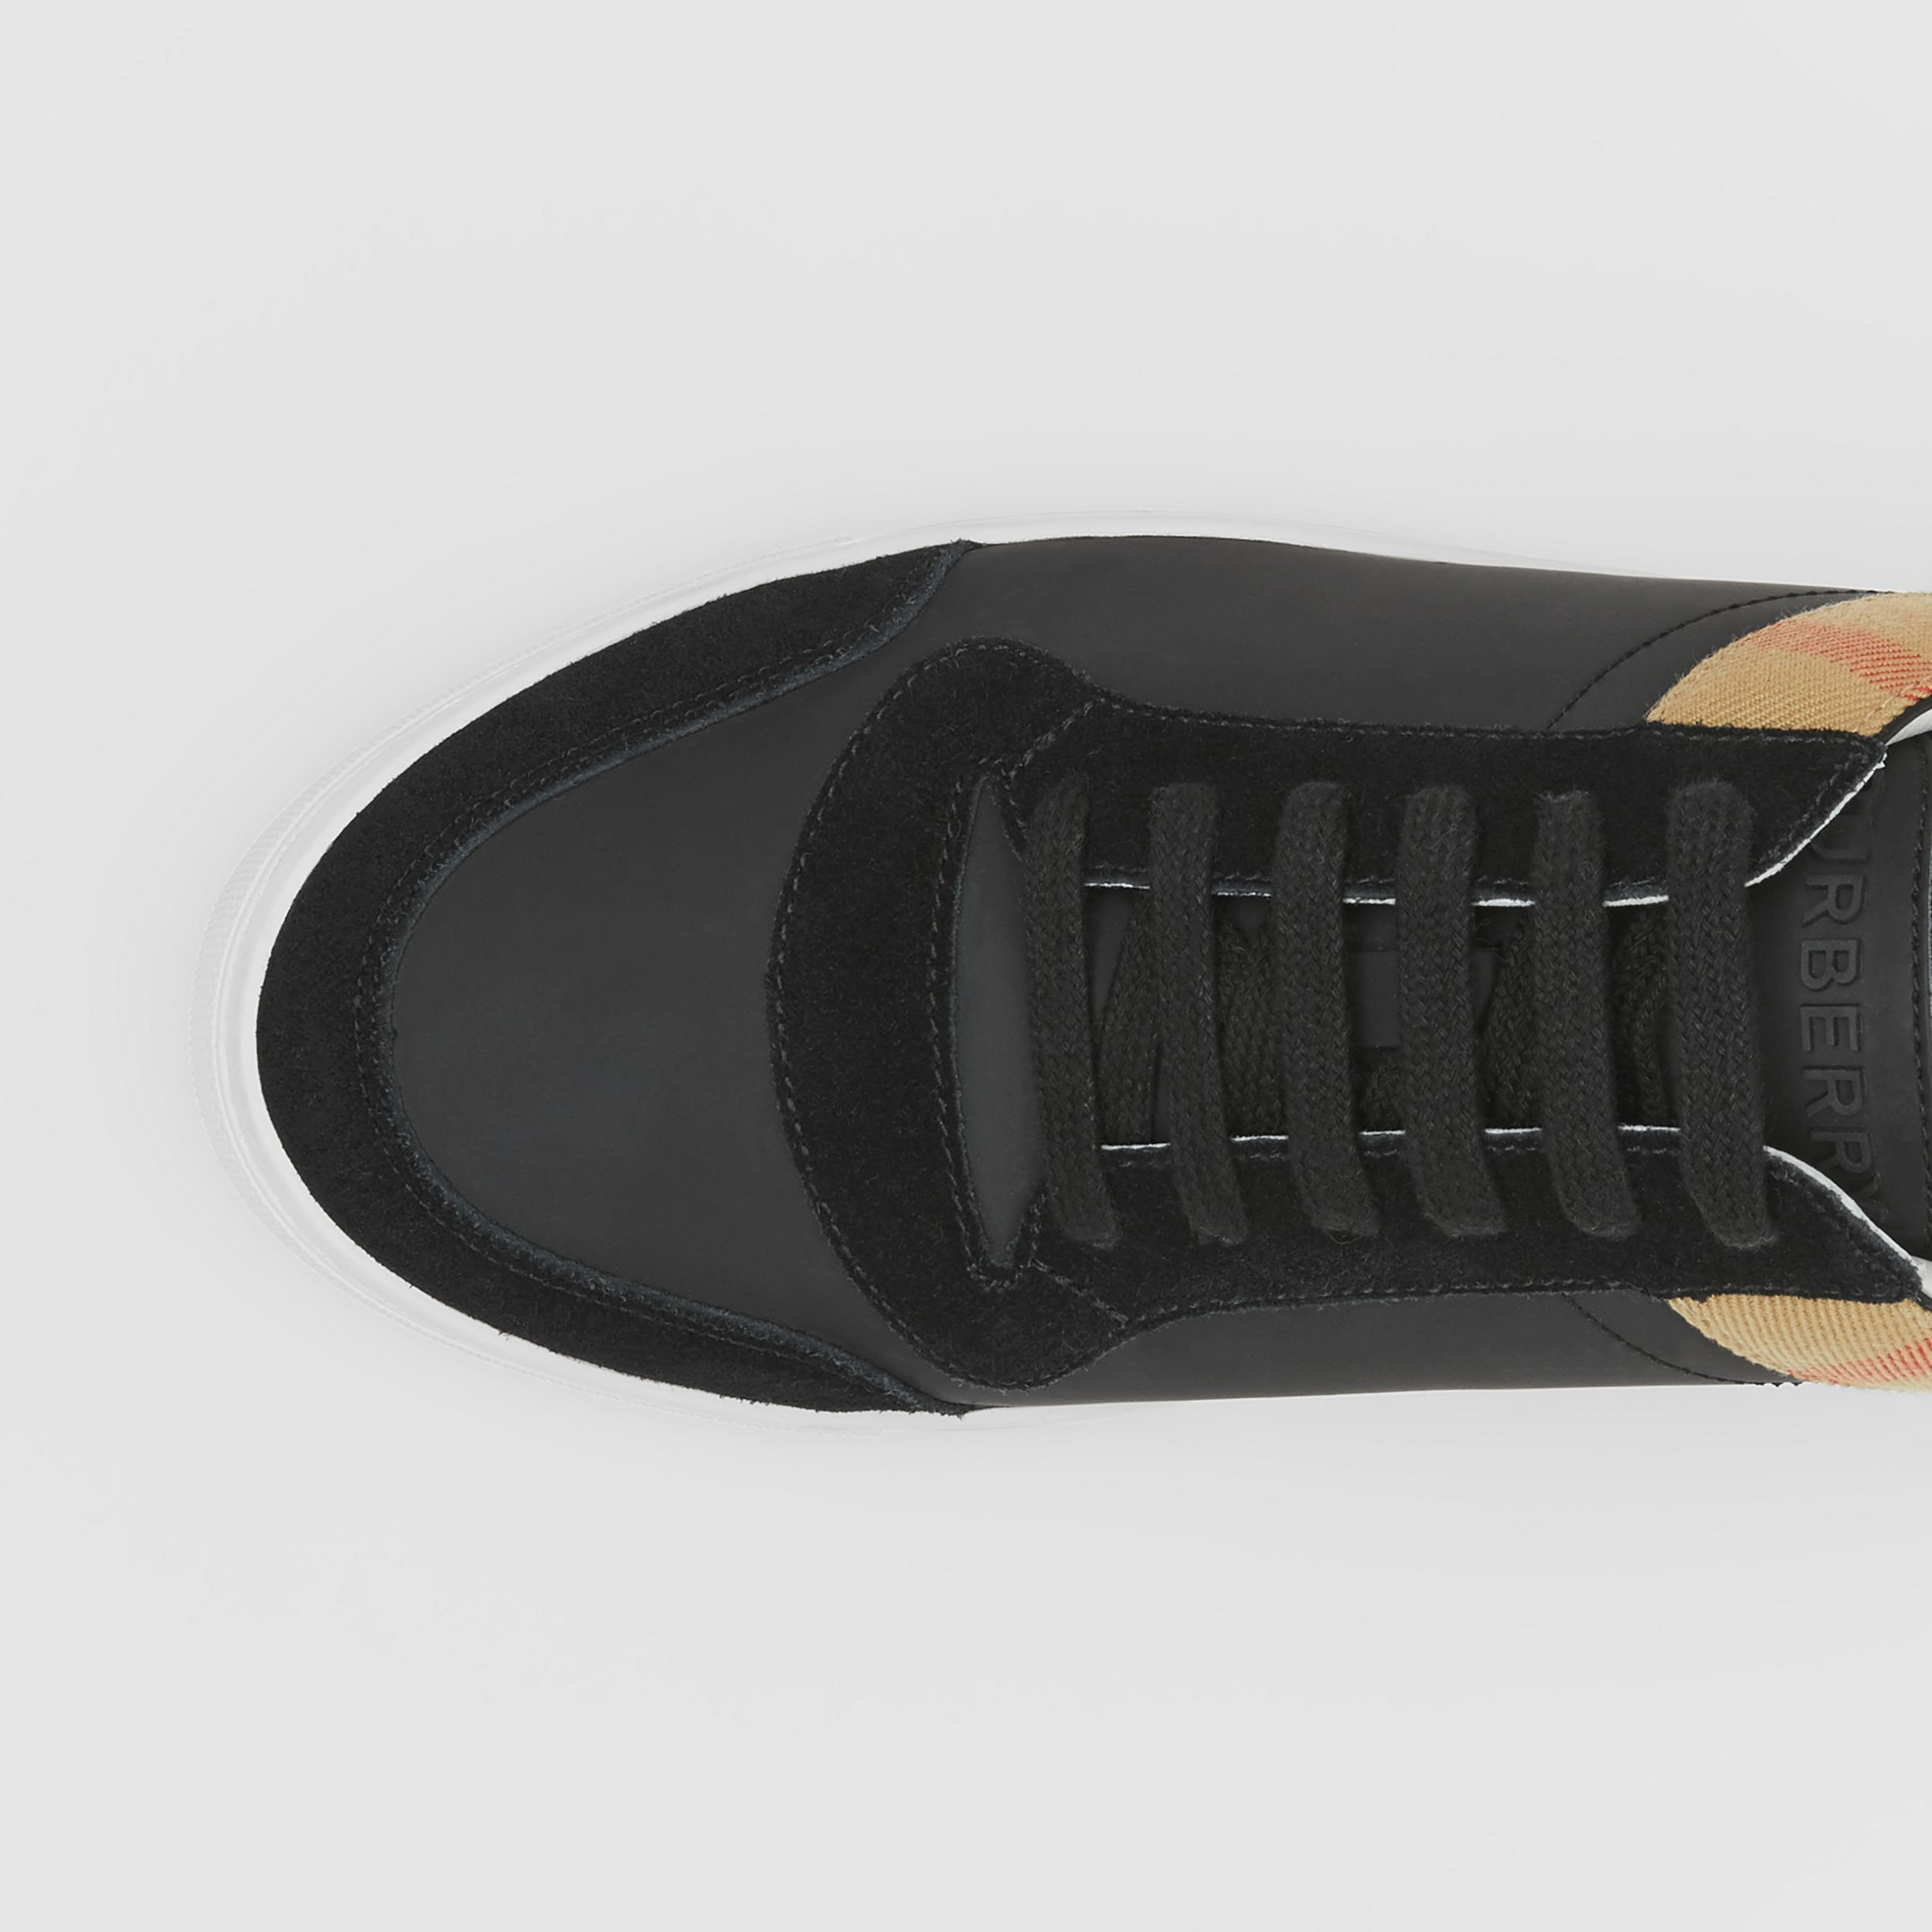 Leather, Suede and House Check Sneakers in Black - Men | Burberry - 2